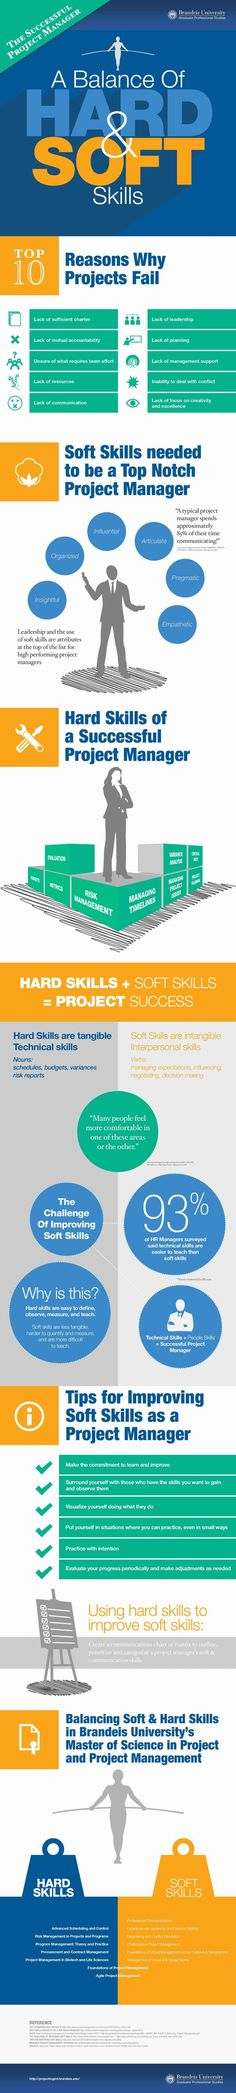 (1) masters in project management online | Project Management | Pinterest